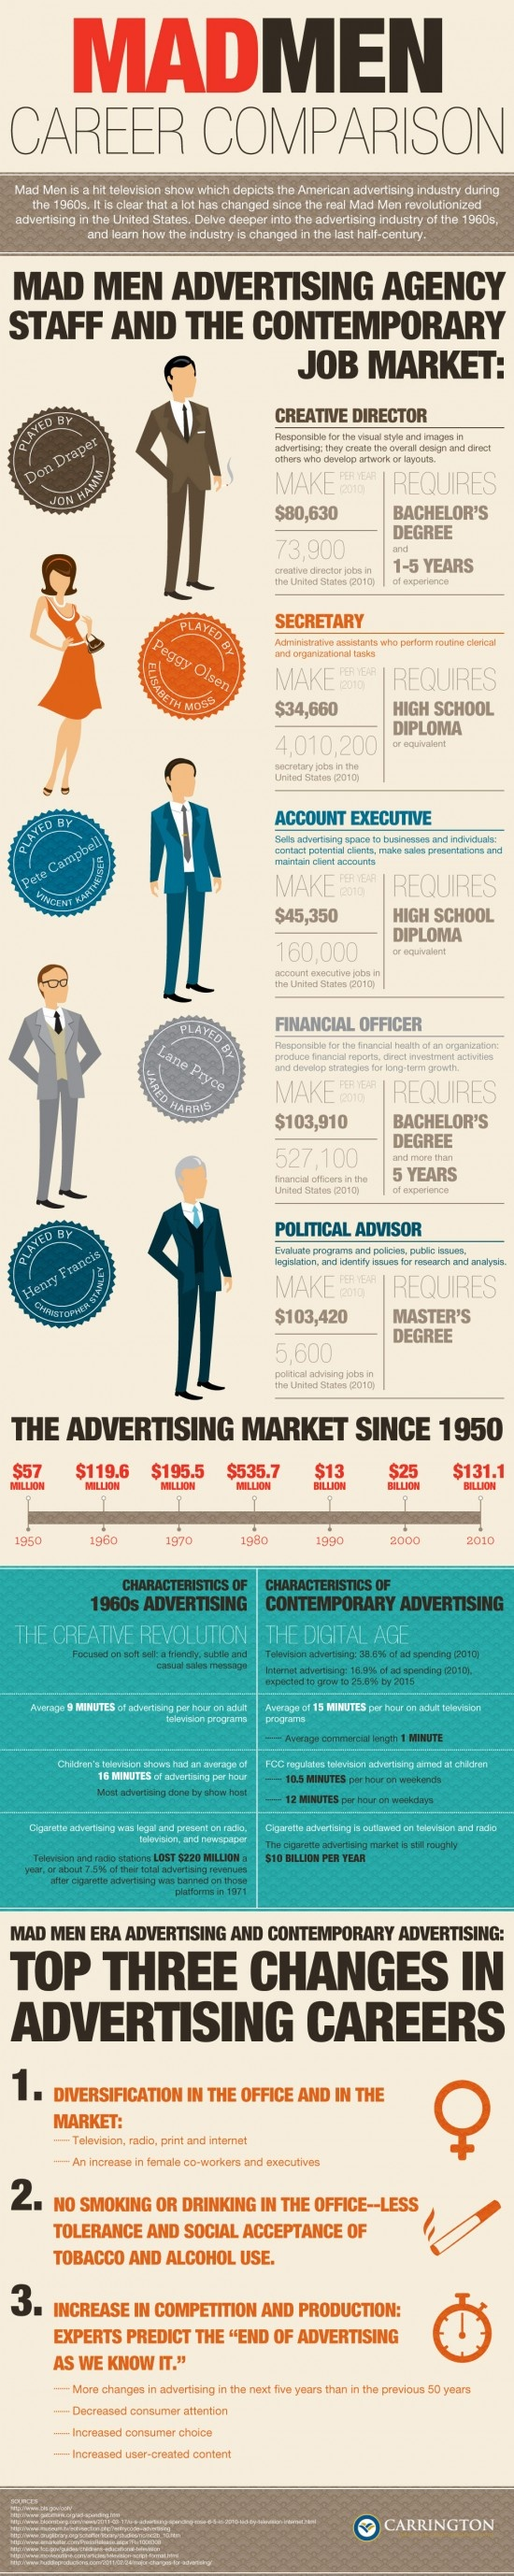 INFOGRAPHIC: MAD MEN CAREER COMPARISON – THEN AND NOW    Mad Men is a hit television show which depicts the American Advertising industry during the 1960′s.  It is clear that a lot has changed since the real Mad Men revolutionized advertising in the United States.  Delve deeper into the advertising industry of the 1960′s and learn how the industry has changed in the last half-century.